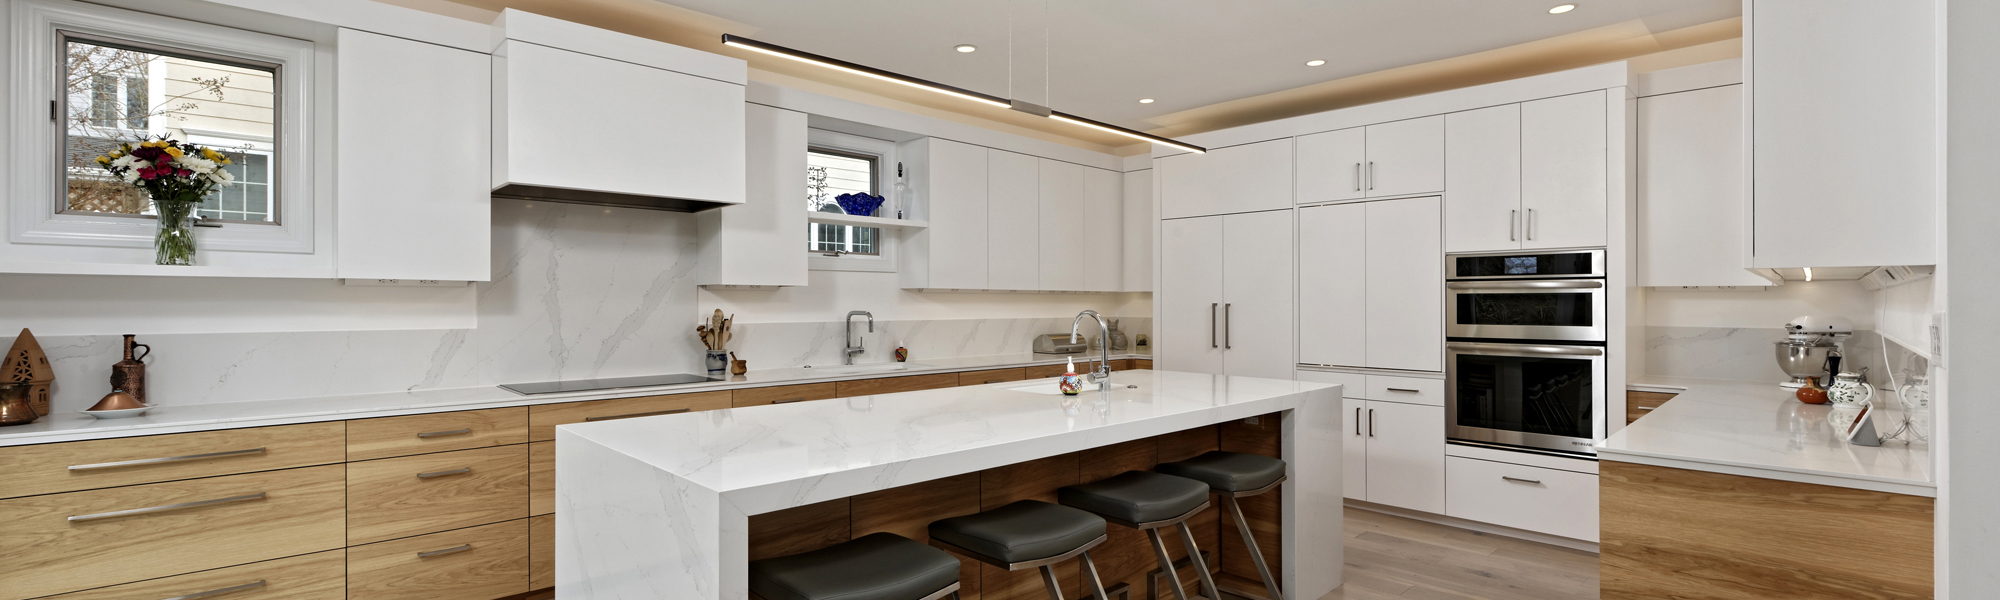 BOWA Design Build Kitchen Renovation McLean VA